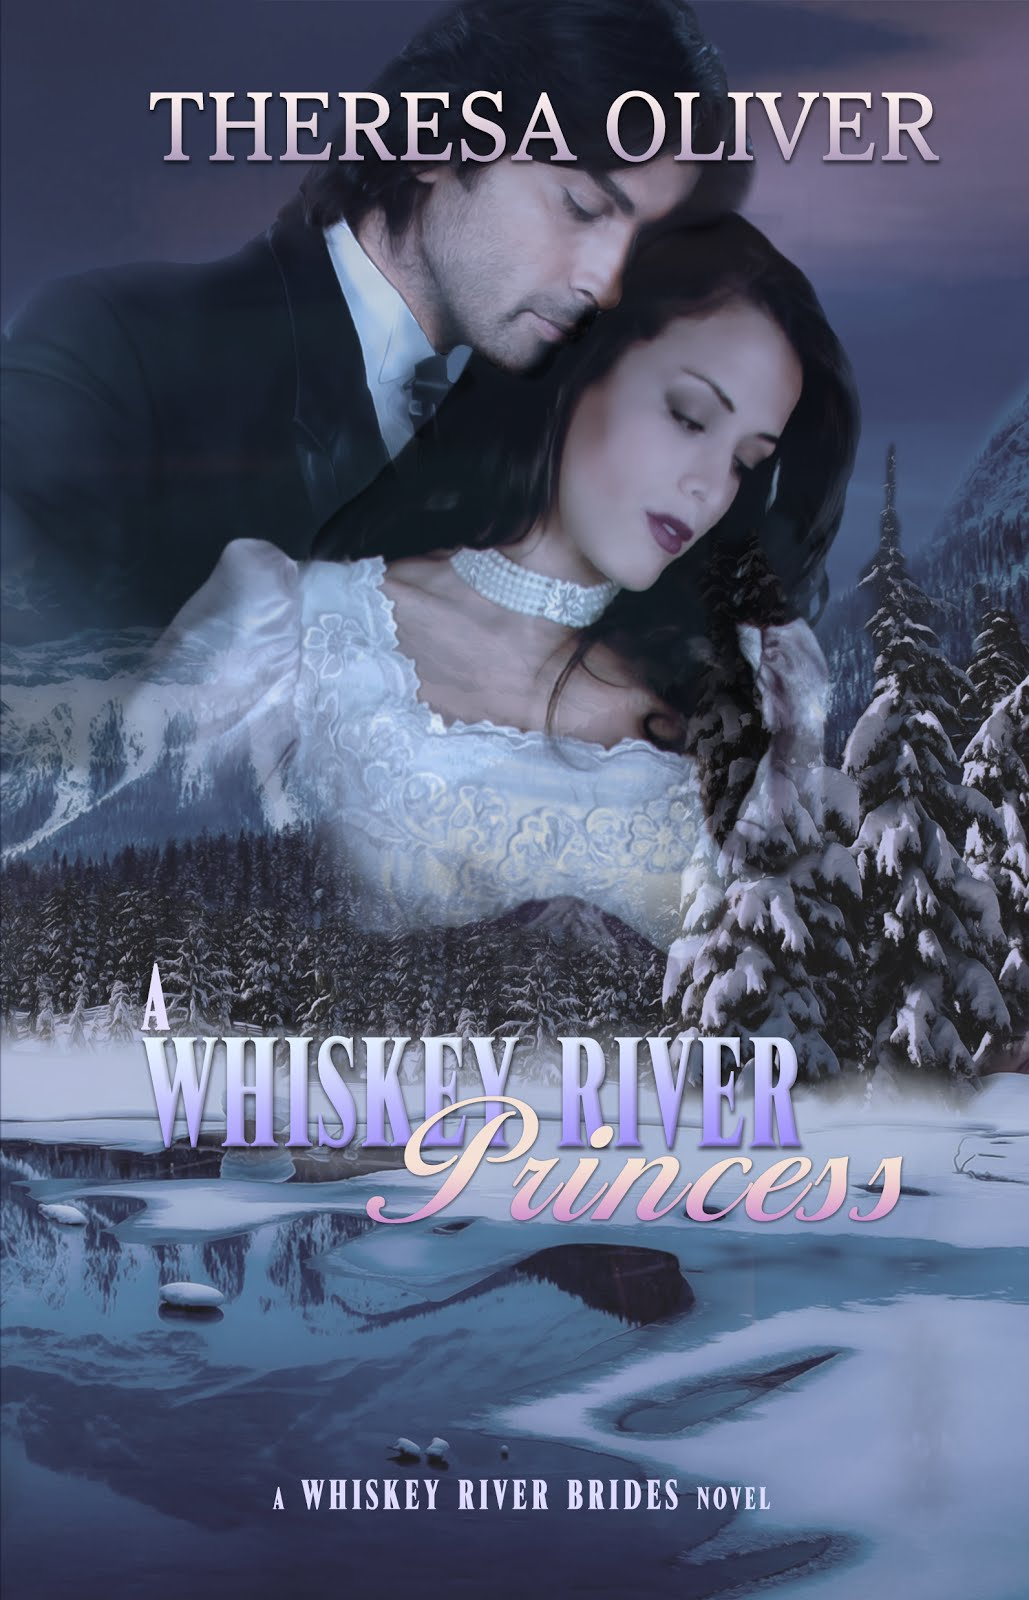 A Whiskey River Princess (Whiskey River Brides, #3)